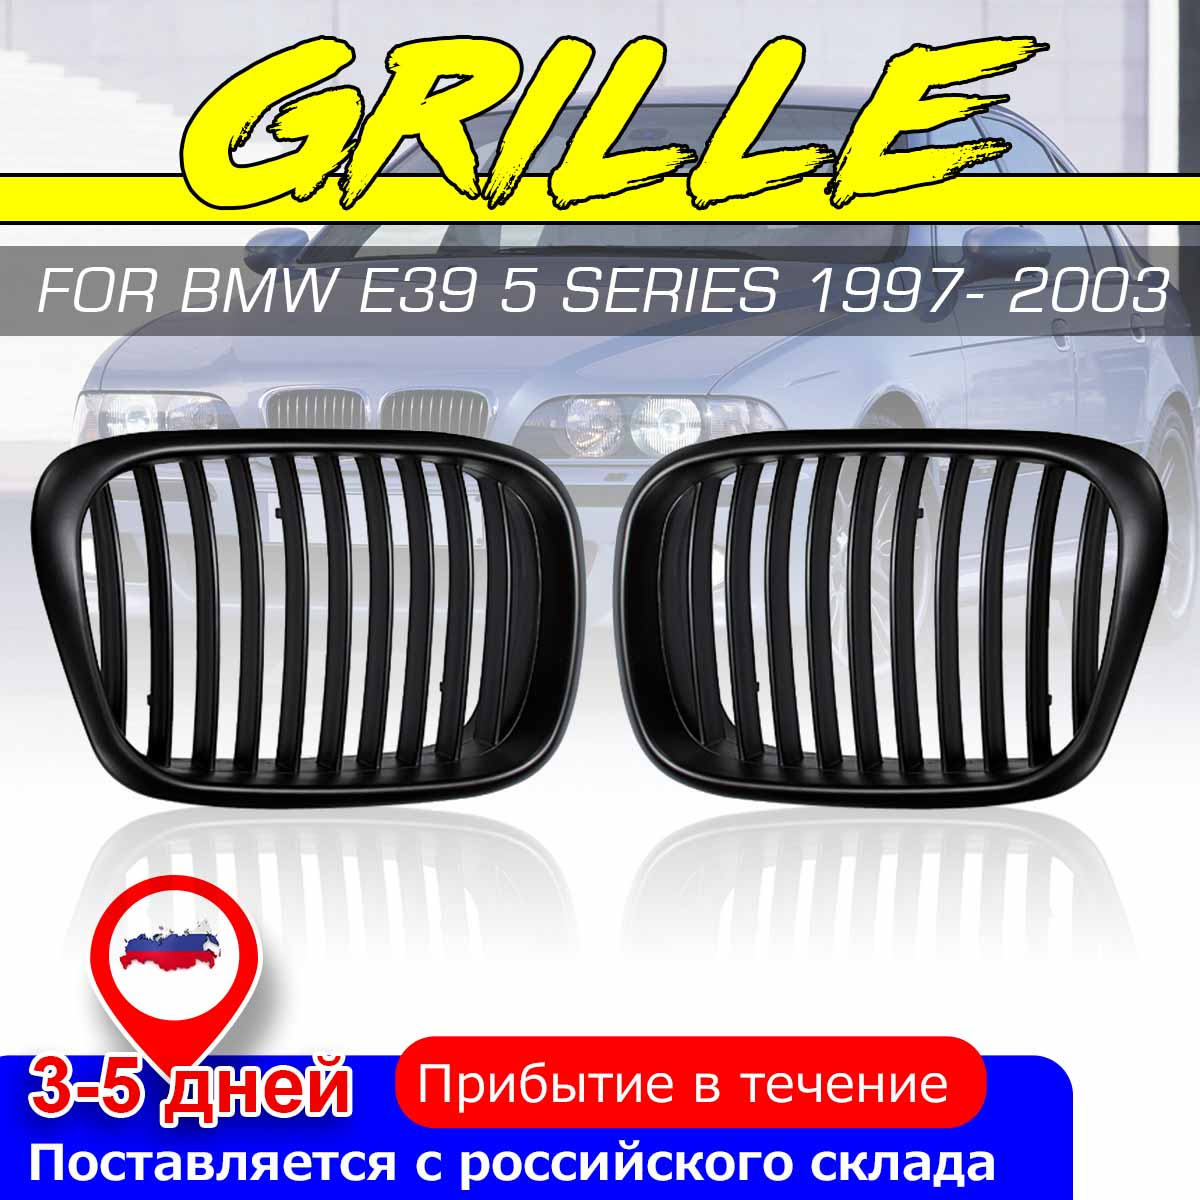 2pcs OEM Style Car Front Black Wide Kidney Grille Grill for BMW E39 5 series 1997 1998 1999 2000 2001 <font><b>2002</b></font> 2003 image